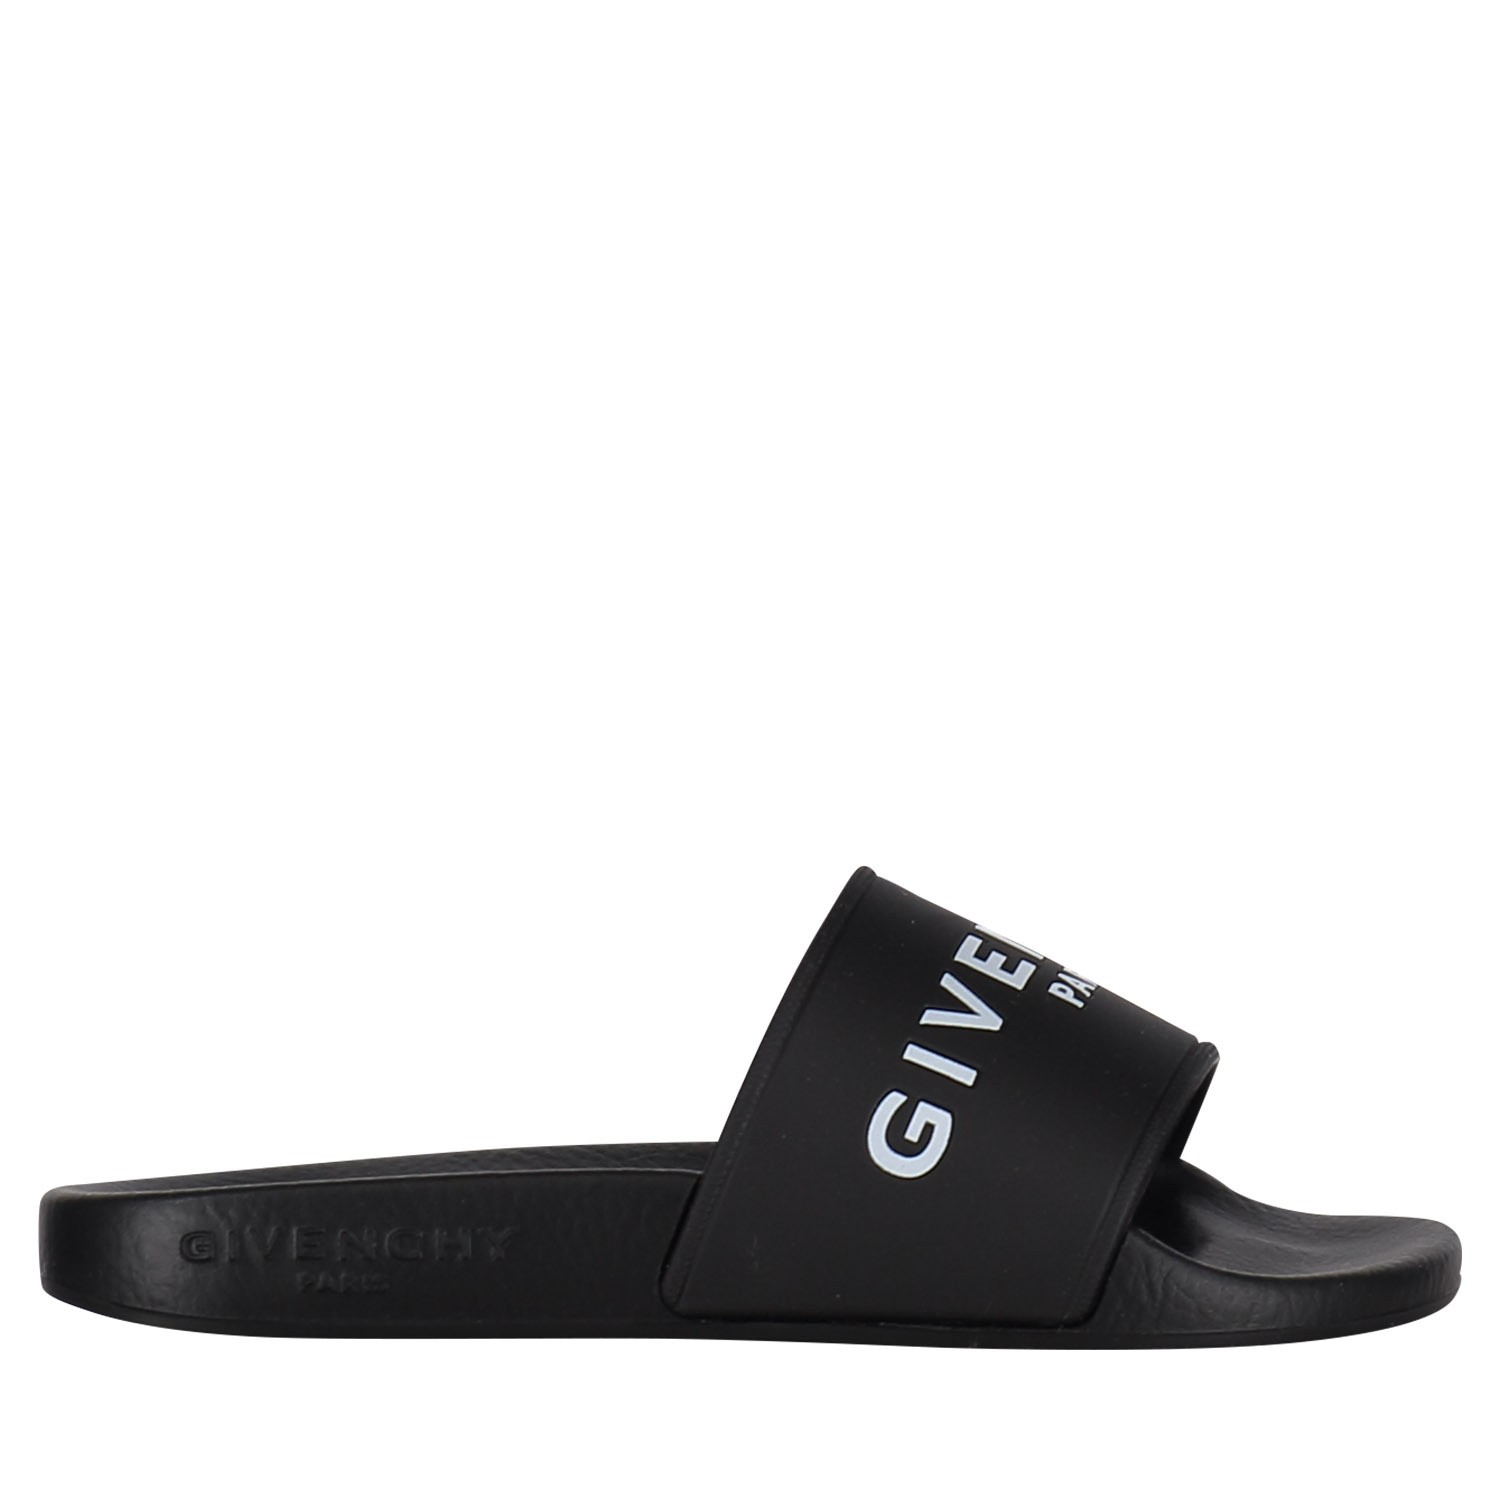 Picture of Givenchy H29017 kids flipflops black